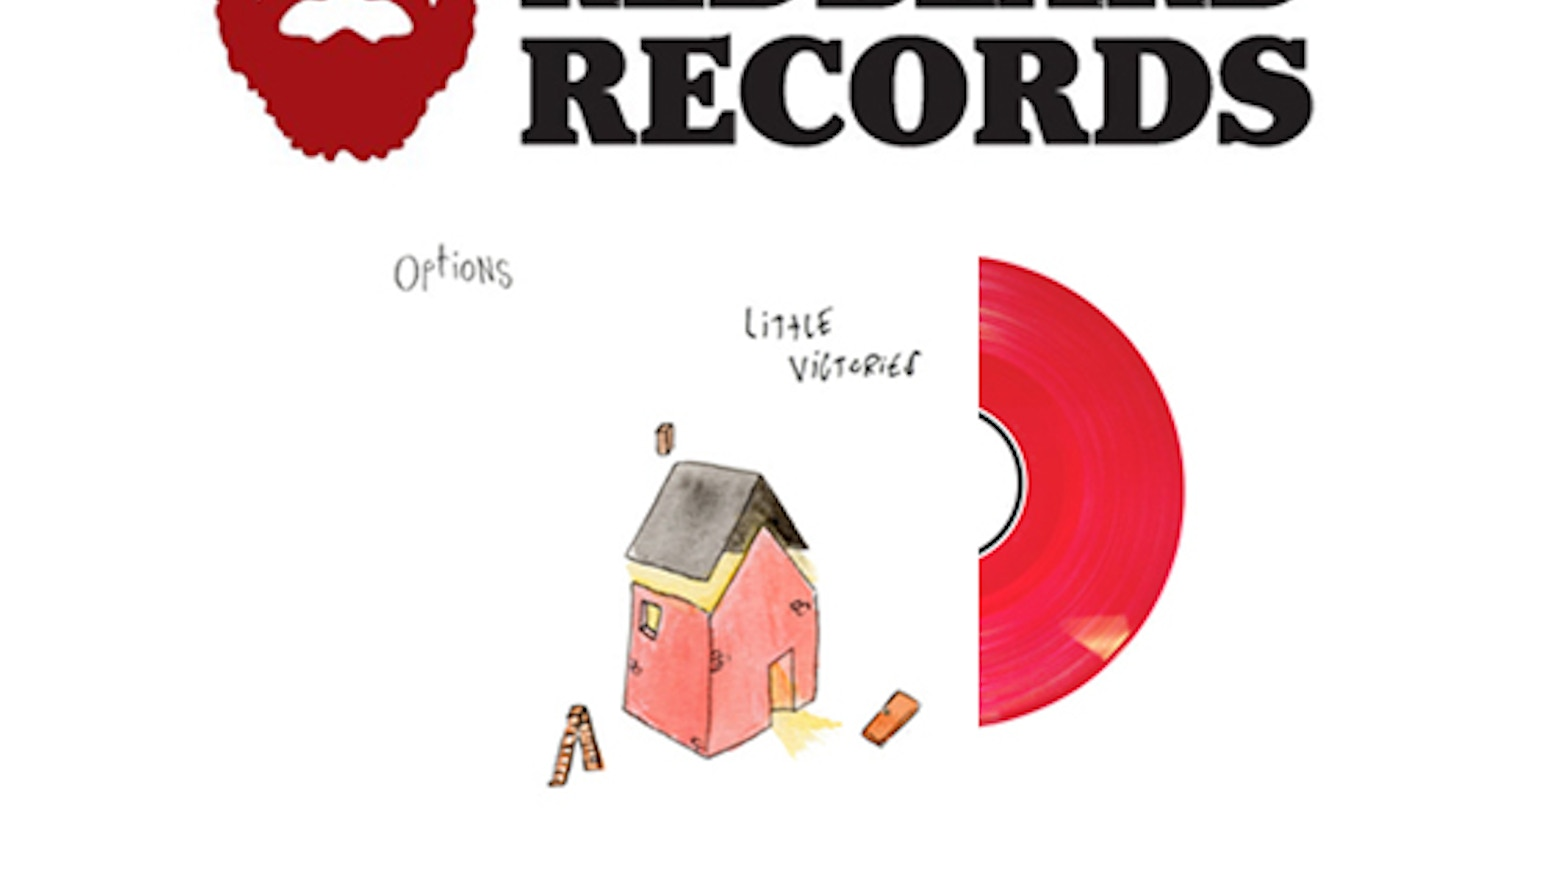 Options and Redbeard Records are teaming up to release Little Victories on  250 hand-numbered copies of colored vinyl. 4c49a8989